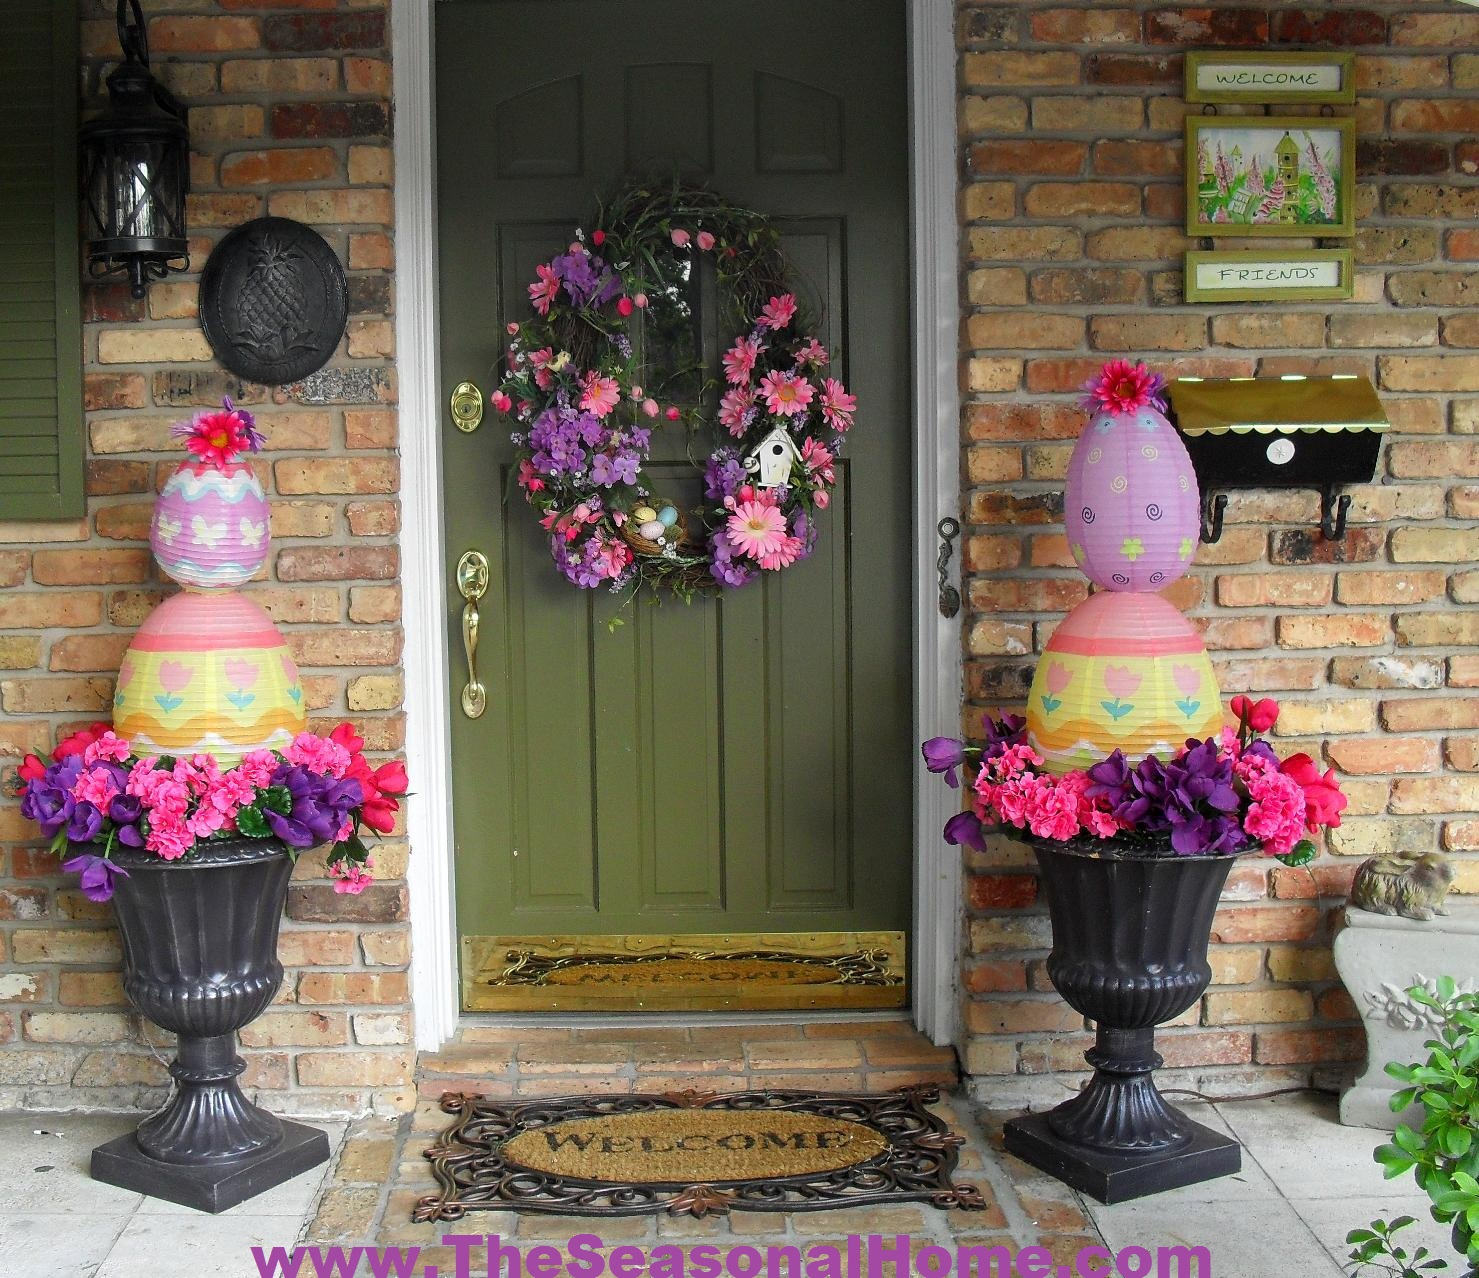 Spring Design Ideas: EASTER EGG TOPIARY « The Seasonal Home